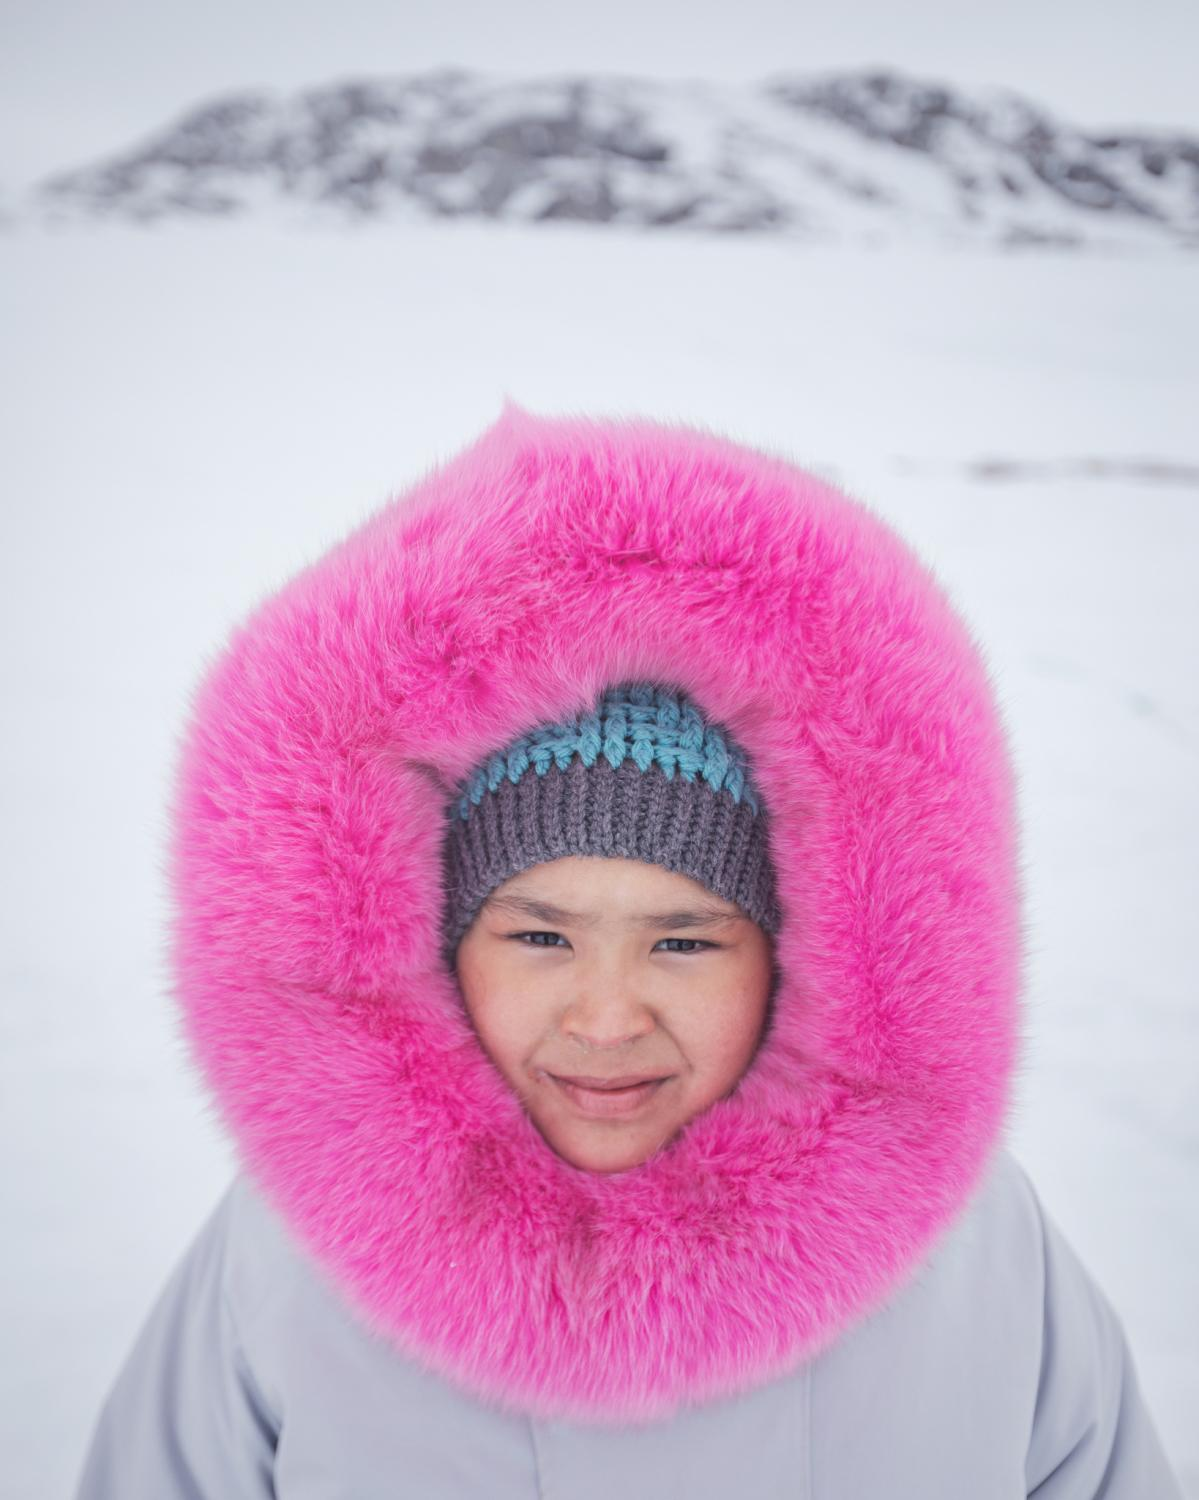 Wearing a parka sewn by her mother, Ashley Hughes spent her 10th birthday camping with friends and family at Ikpikittuarjuk Bay. Hughes took part in the Inuit community's annual ice fishing competition for arctic char.